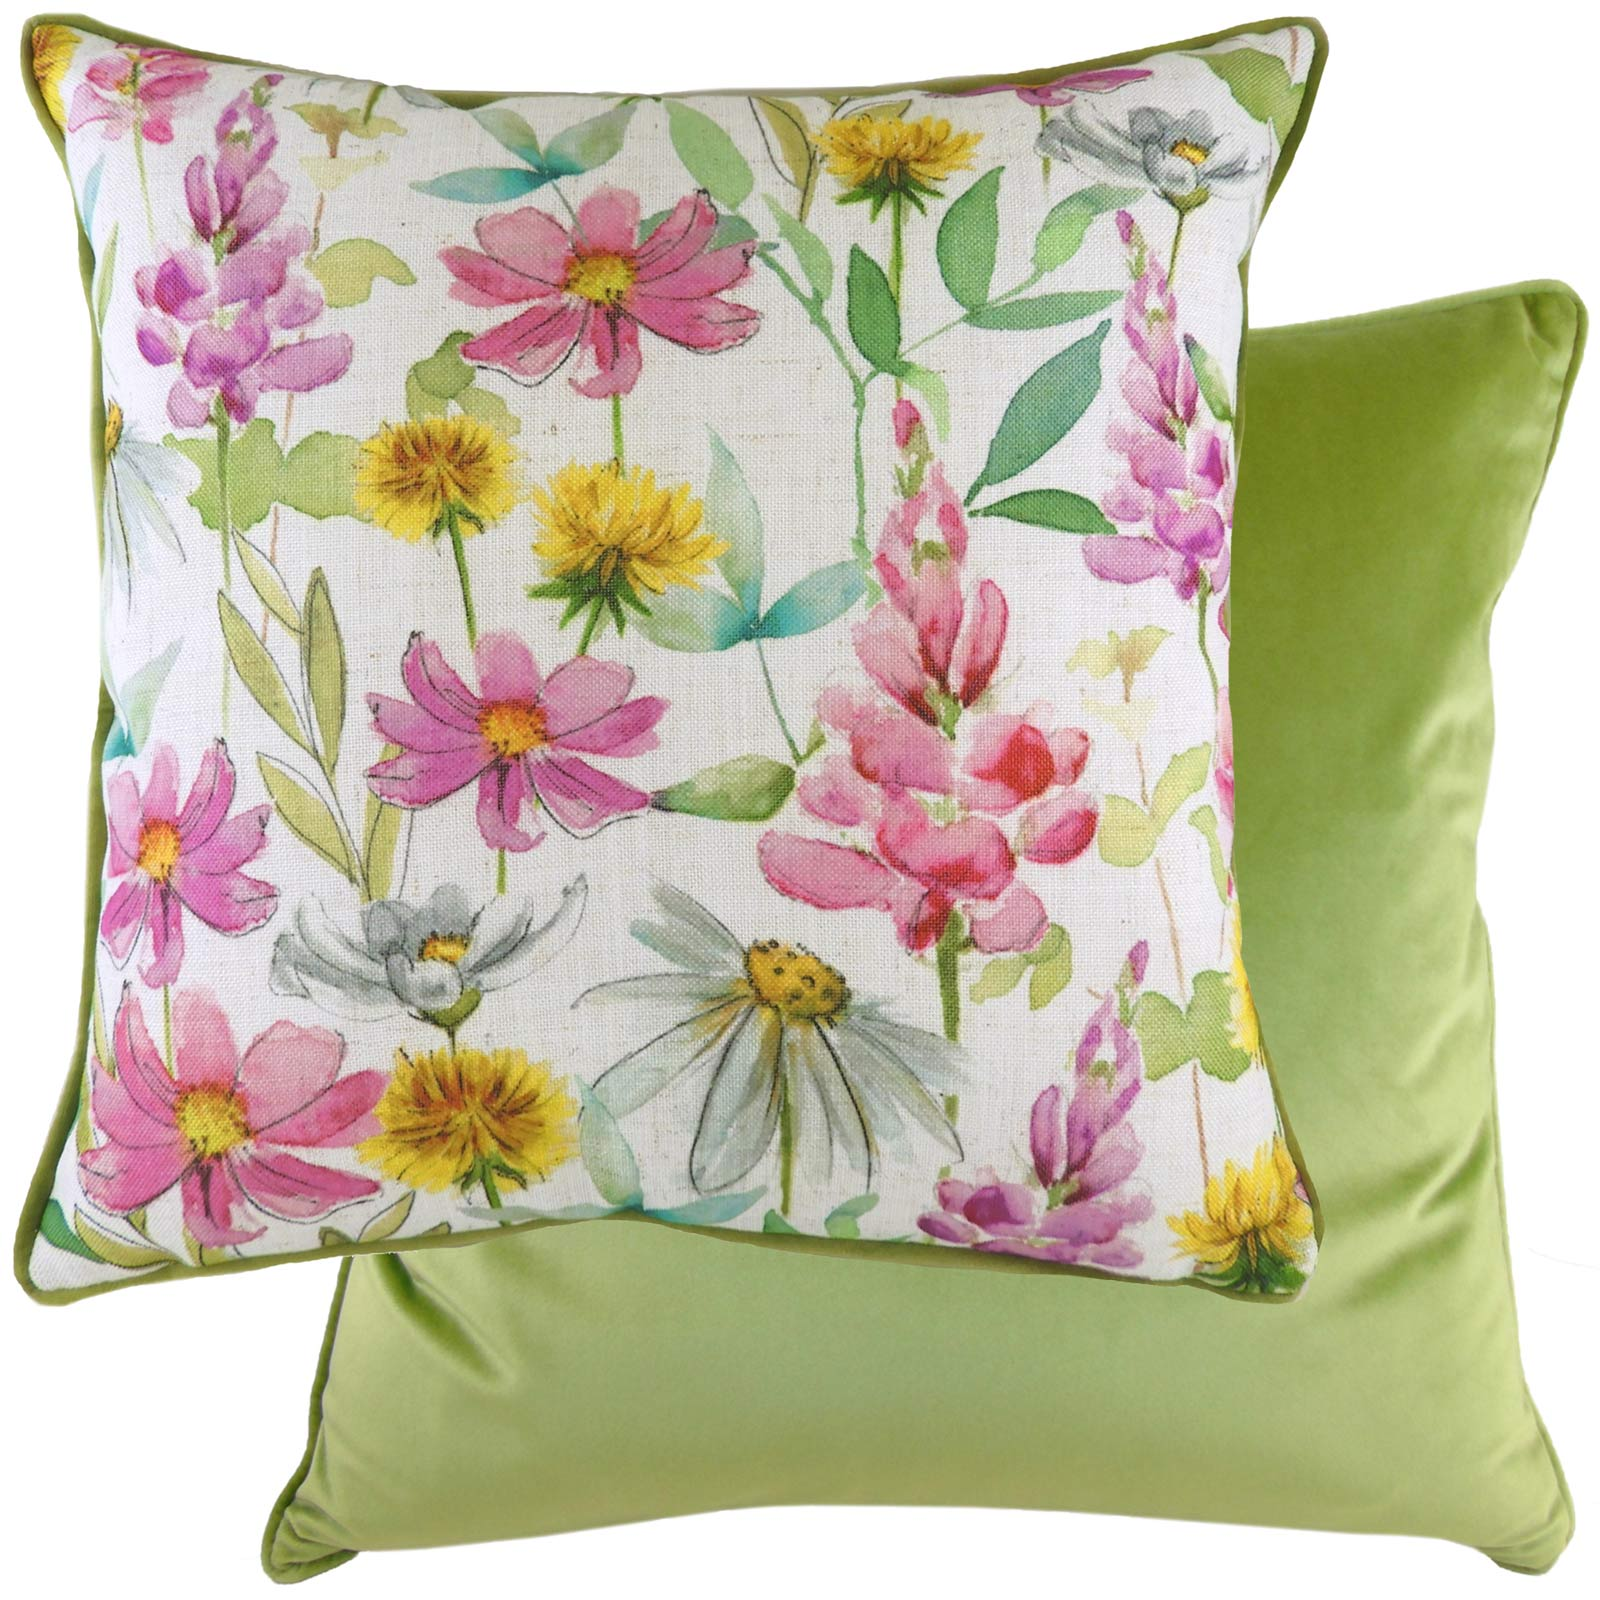 Wild Flowers Ava Floral Multicolour Cushion Covers 17'' x 17'' -  - Ideal Textiles